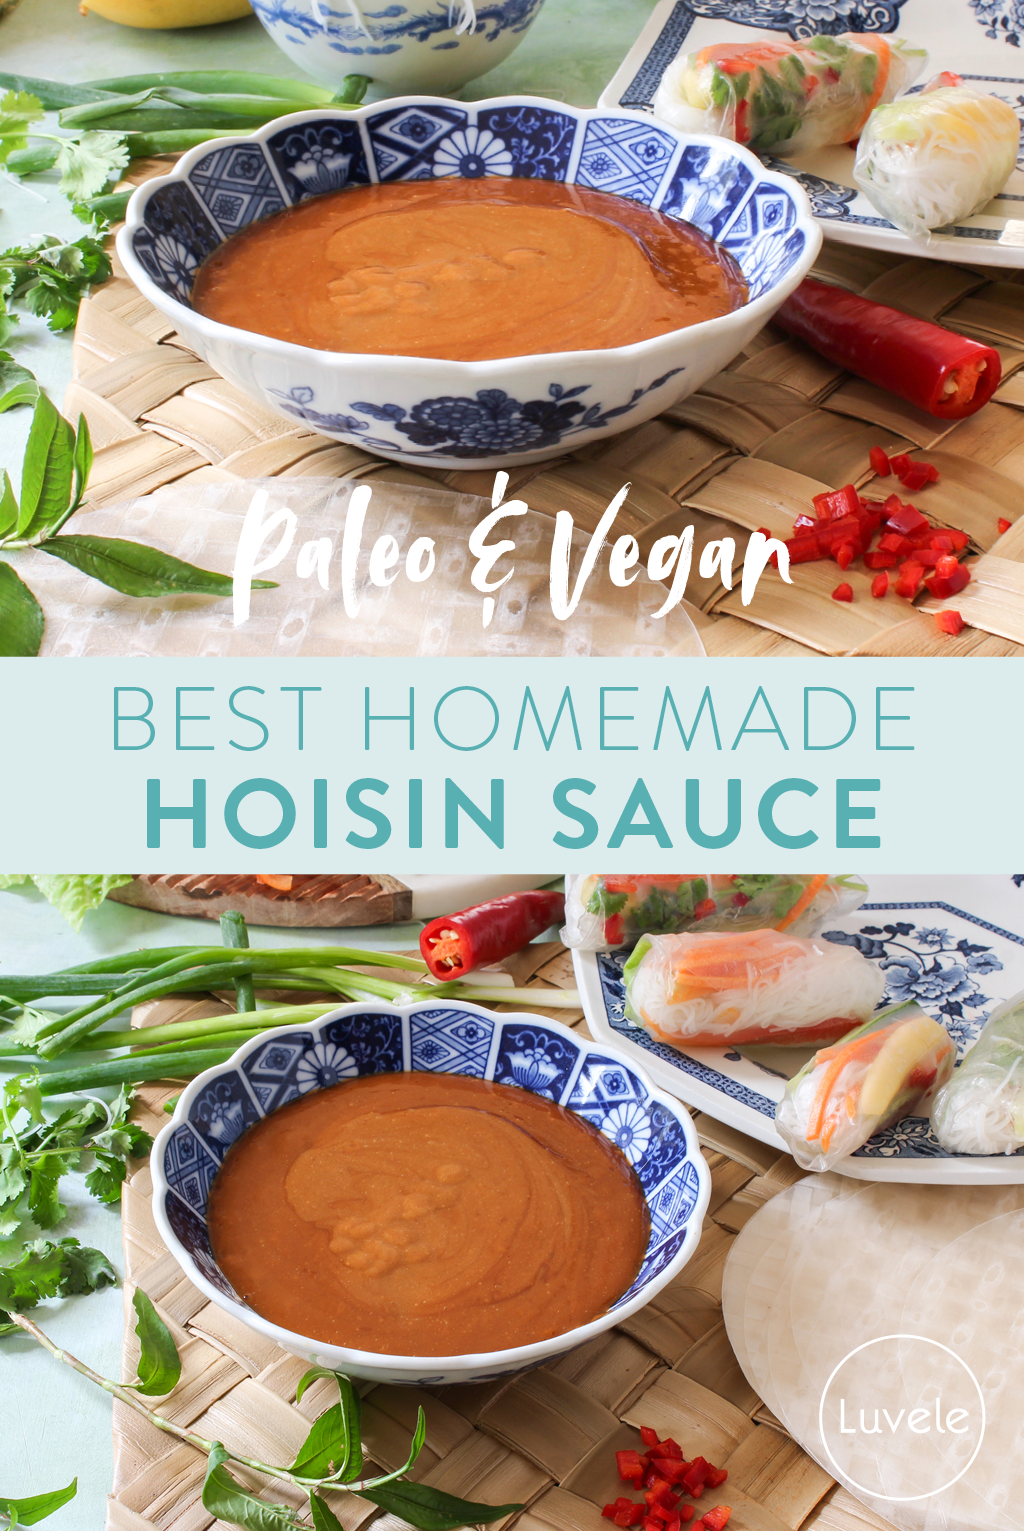 Homemade Hoisin sauce recipe